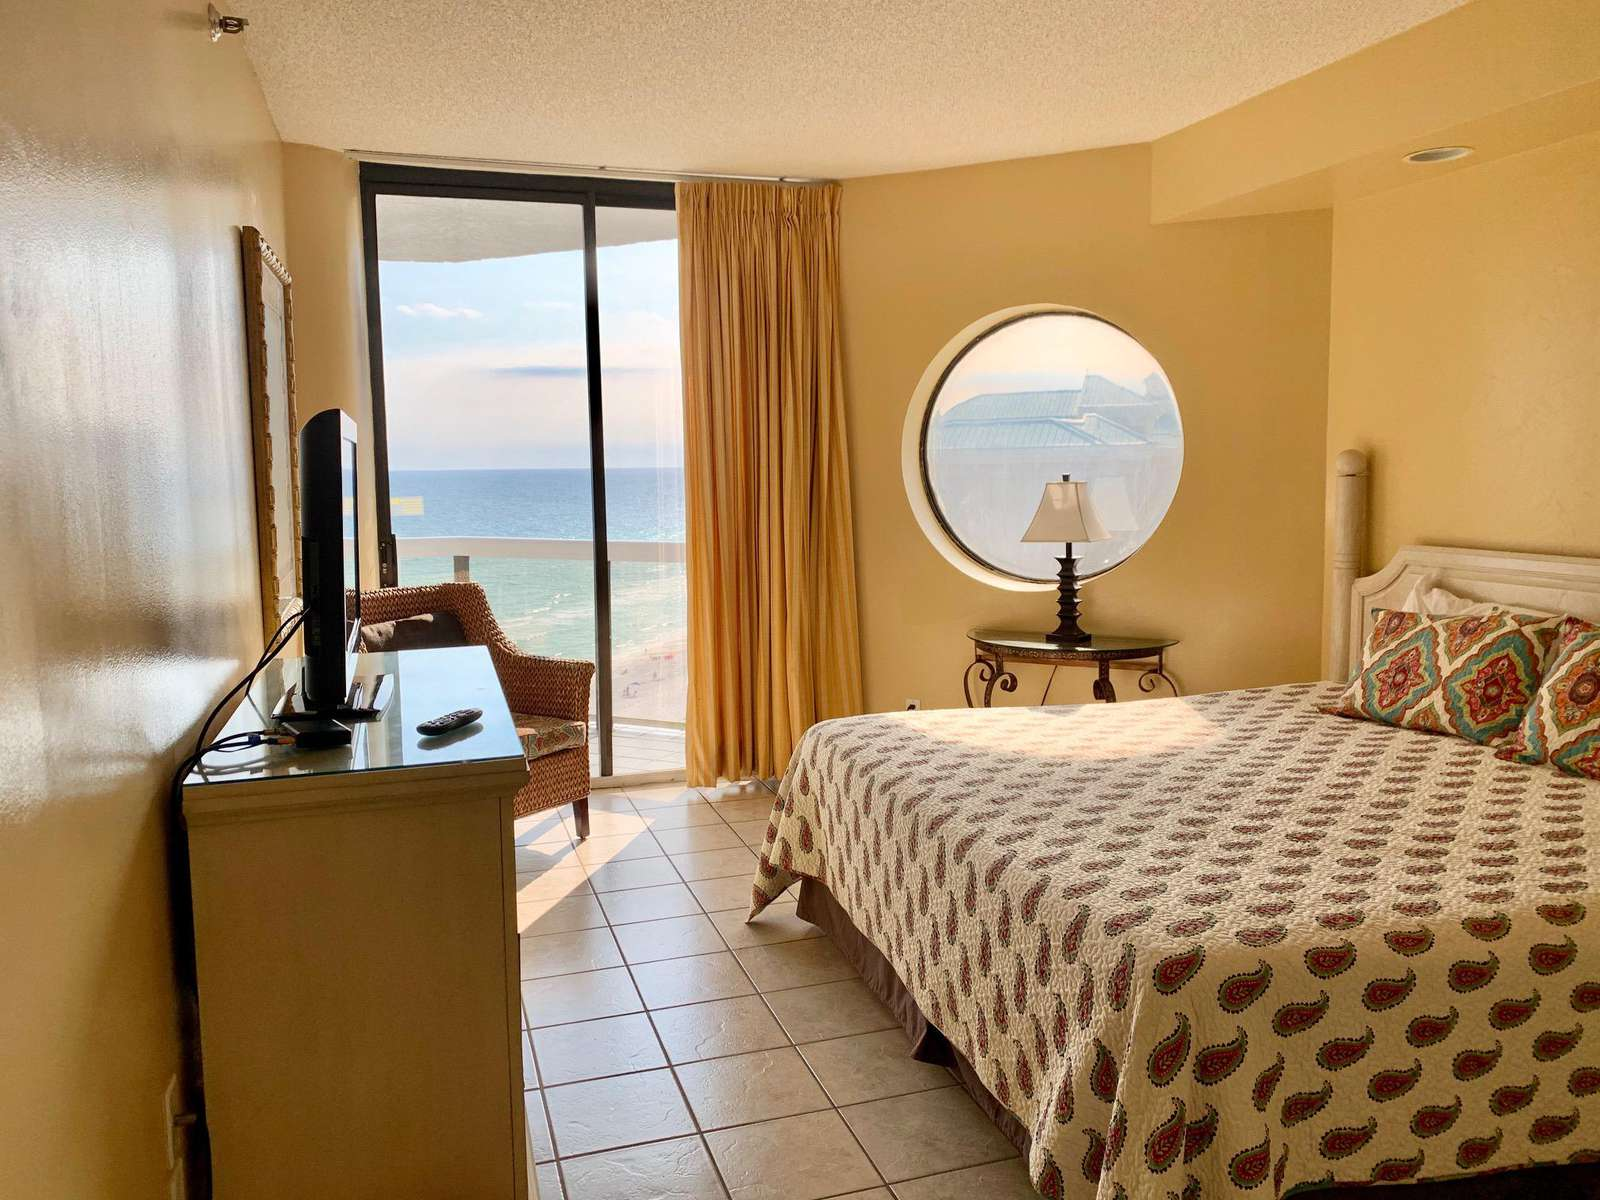 Master bedroom features a king bed, balcony access, great ocean views!